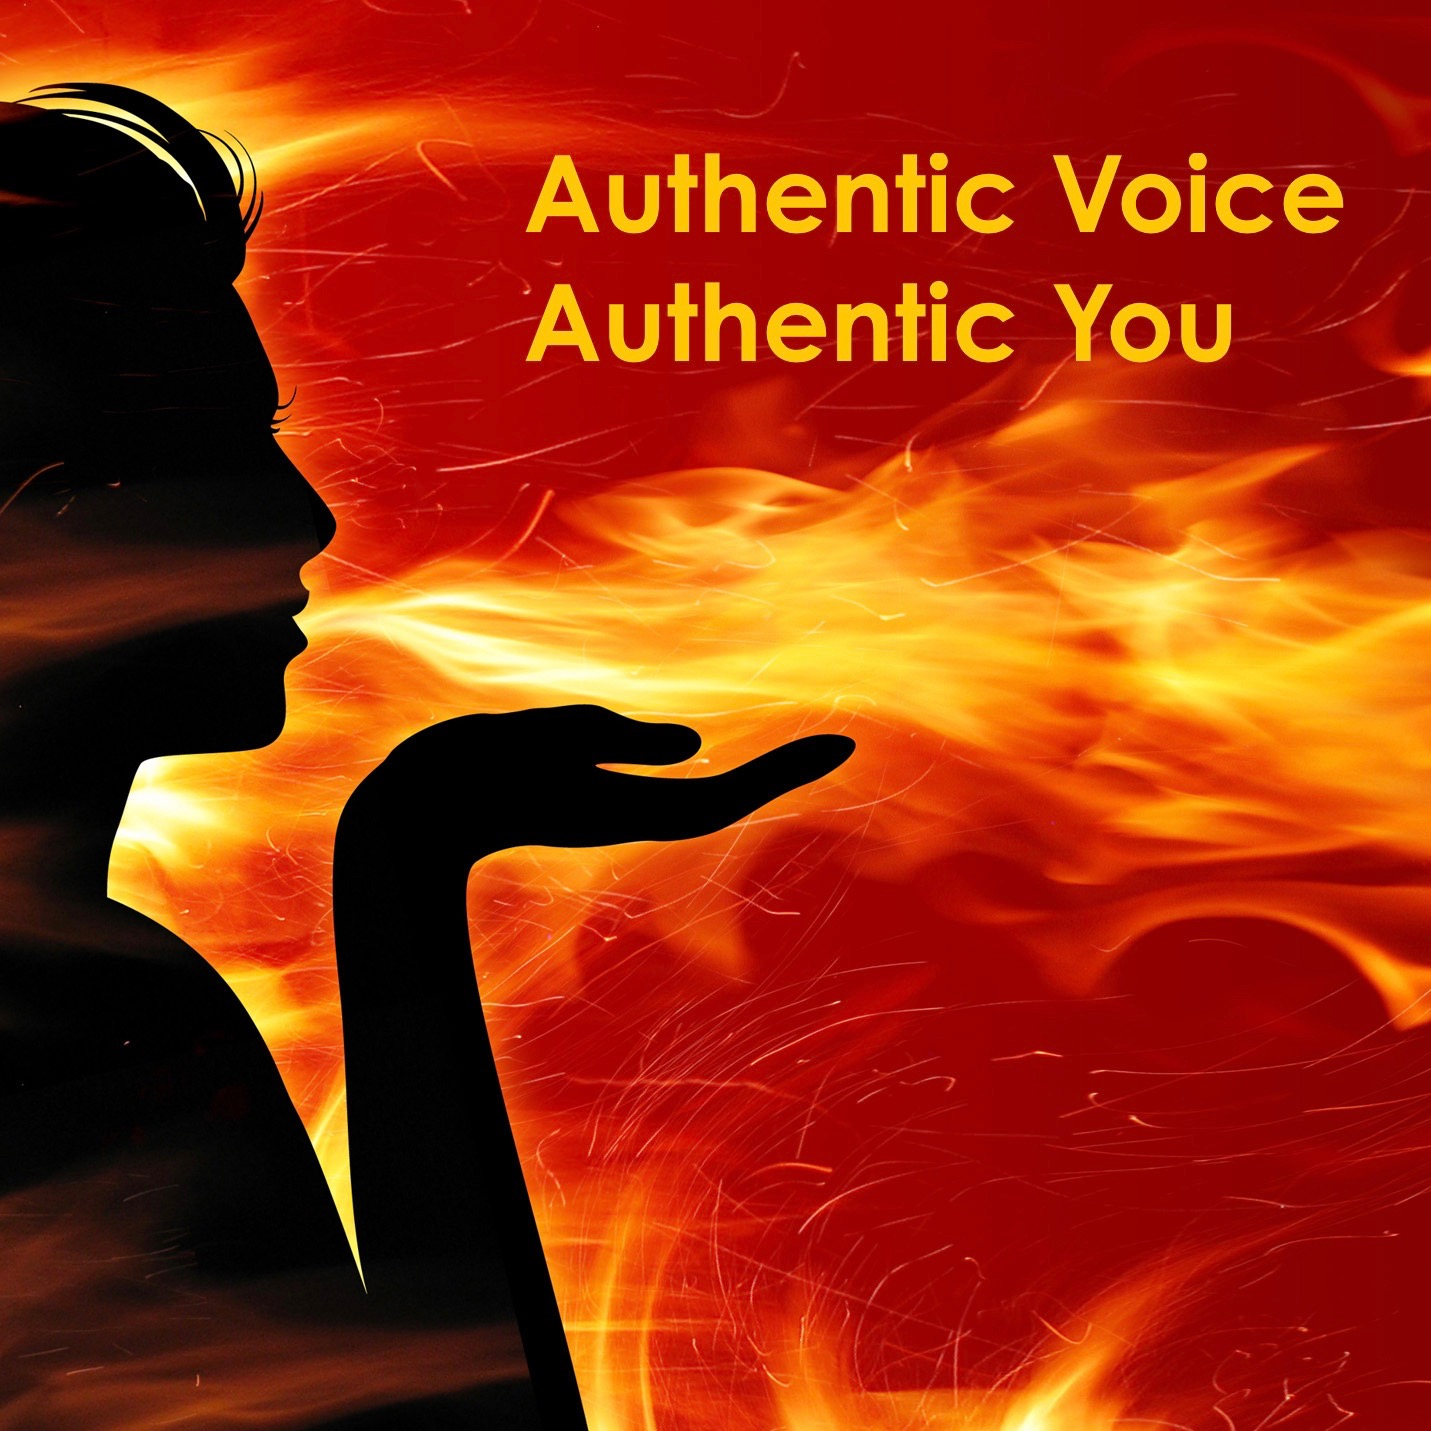 Authentic Voice, Authentic You - Would you like to feel confident to express your voice freely in all situations and with all people? To discover how to use your inner and outer voice to create your reality? To be able to express your authentic self fully?This enjoyable program helps you to do just that.6 x 1 hr classes / One day workshop. Contact Louise.